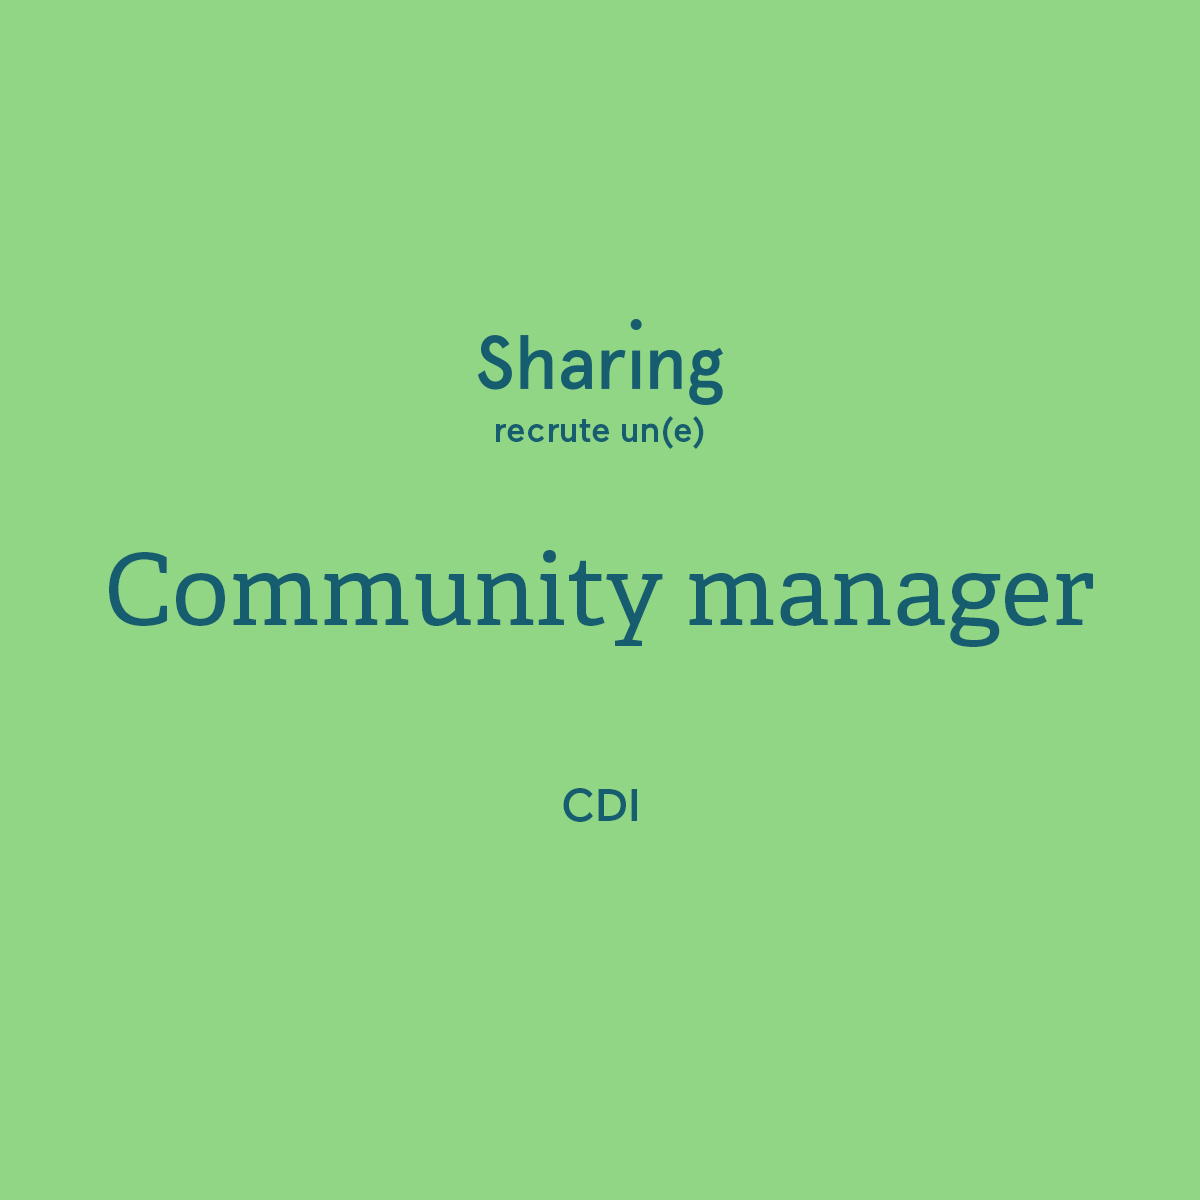 community manager recrutement agence sharing communication cdi recrute